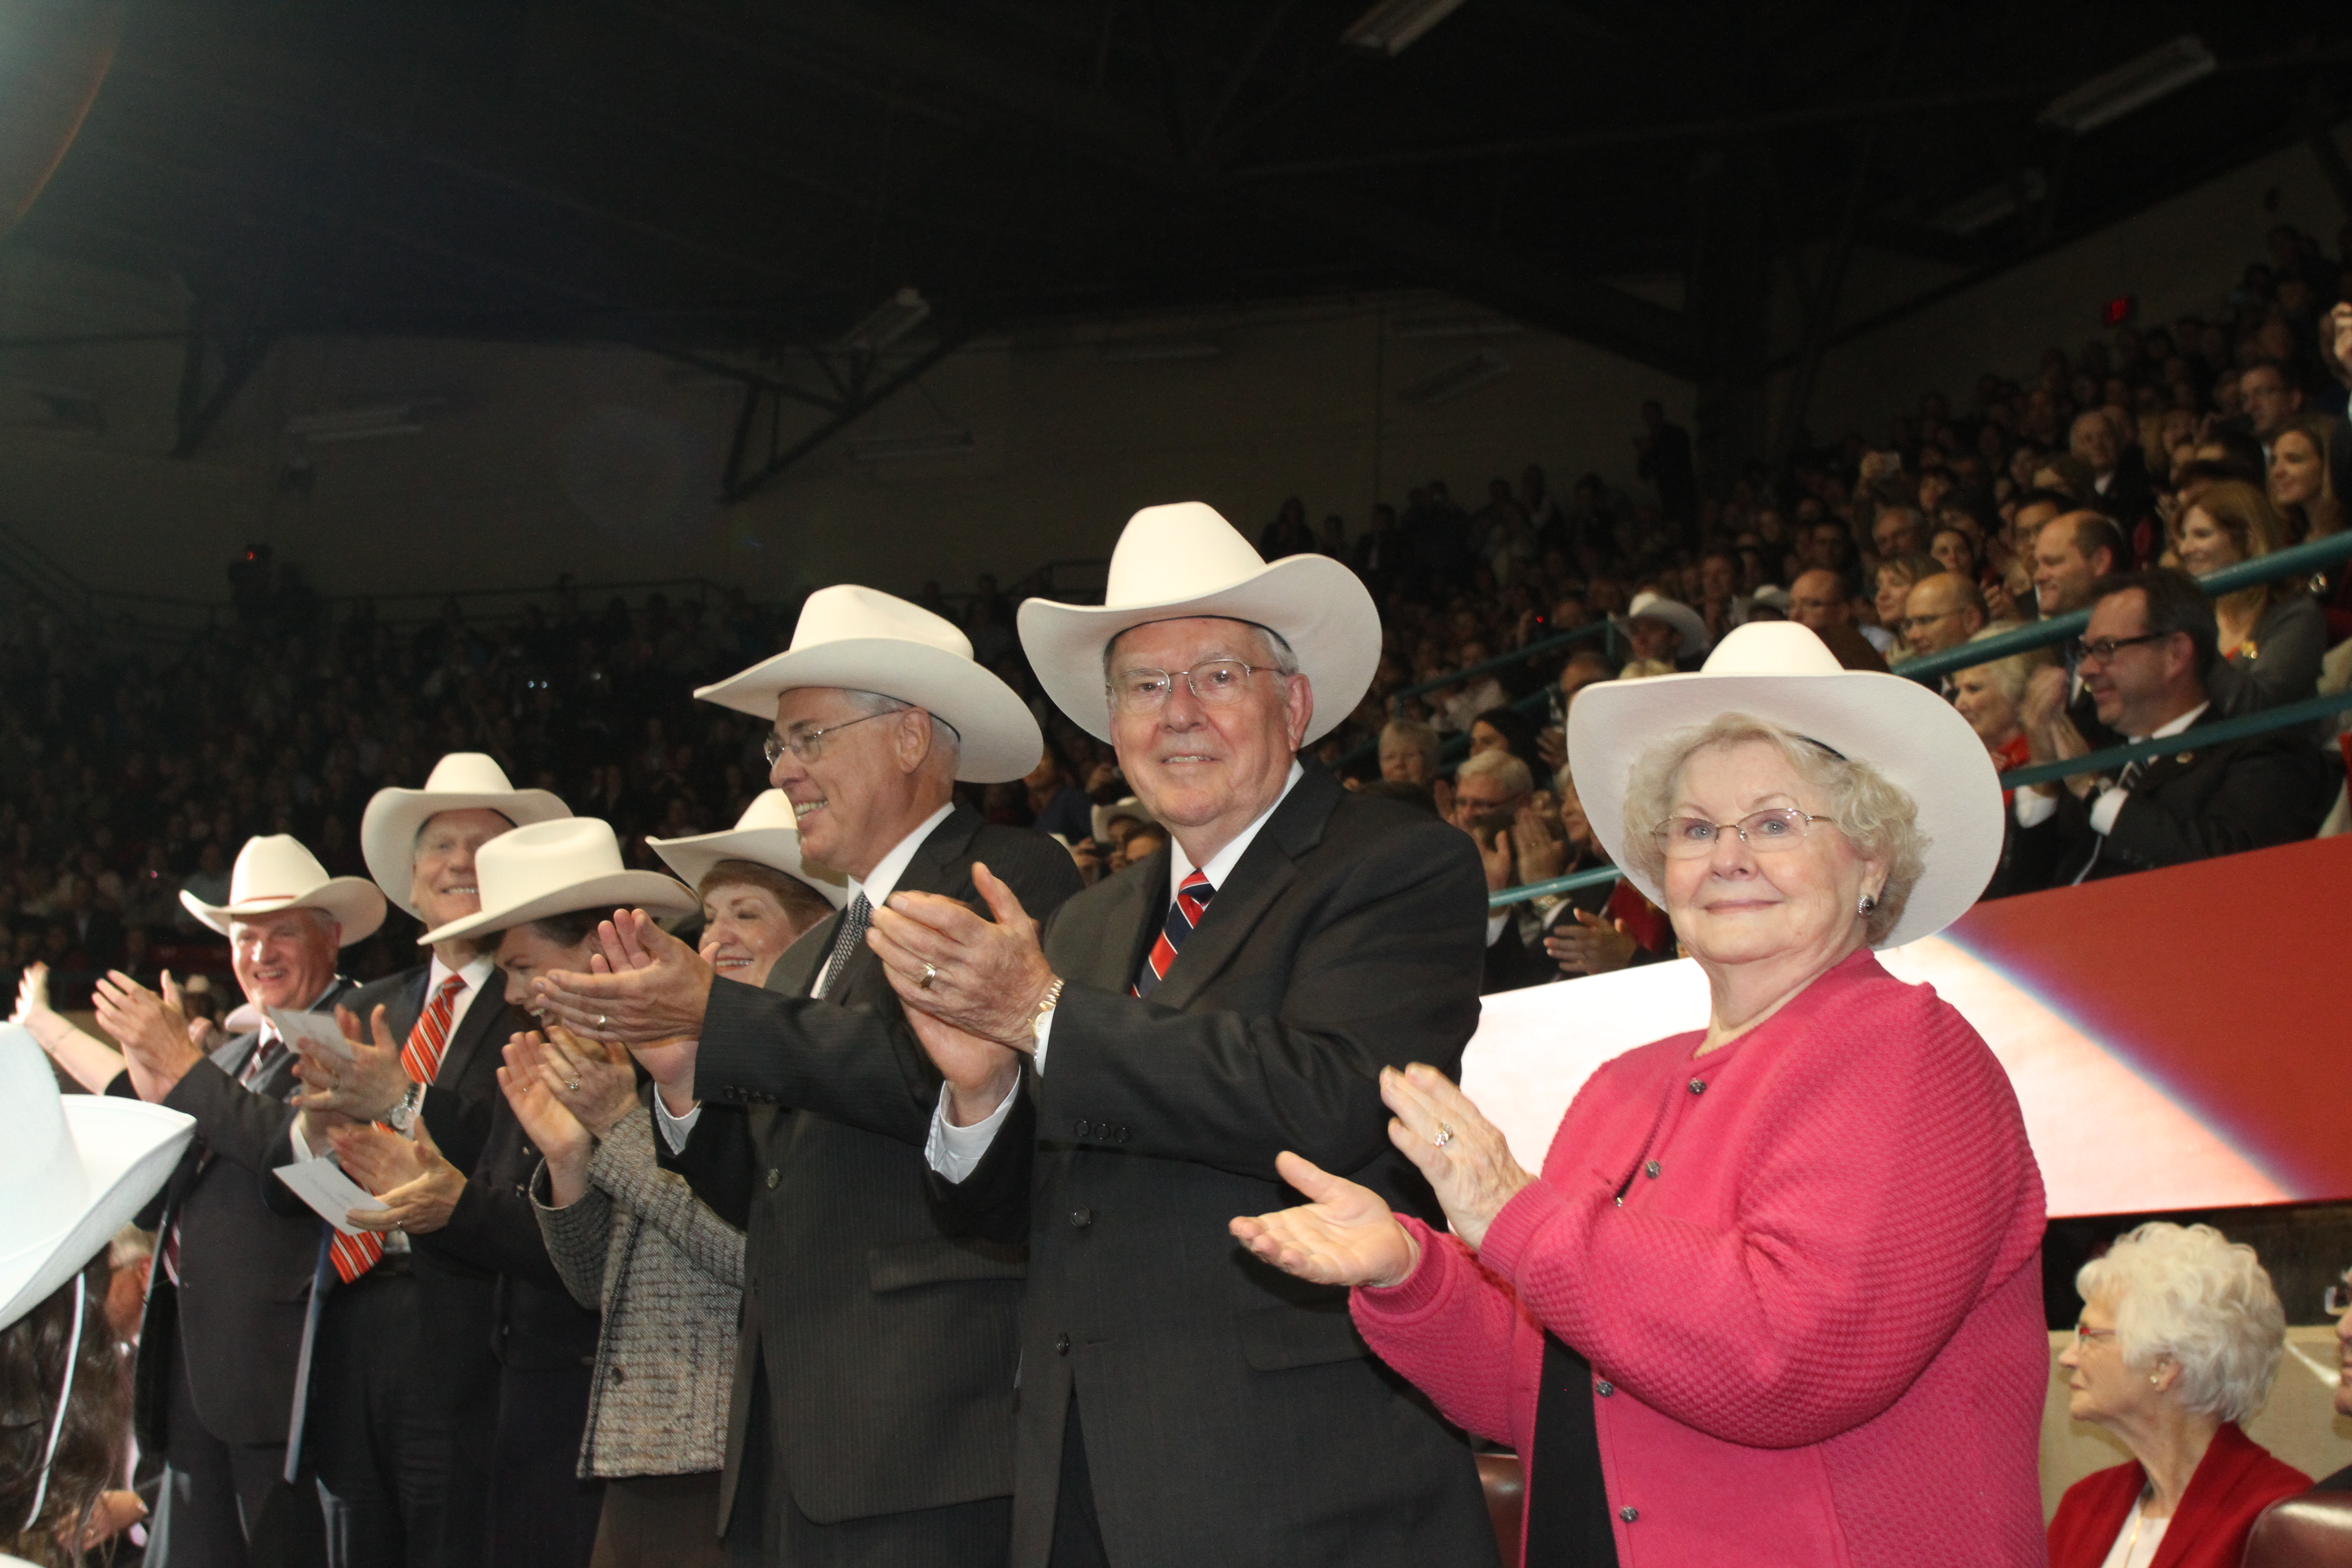 Elder M. Russell Ballard and his wife, Sister Barbara B. Ballard, at right, and other leaders were presented white hats as symbols of western hospitality and good cheer at the October 2012 youth celebration held in conjunction with the Calgary Alberta Canada dedication.